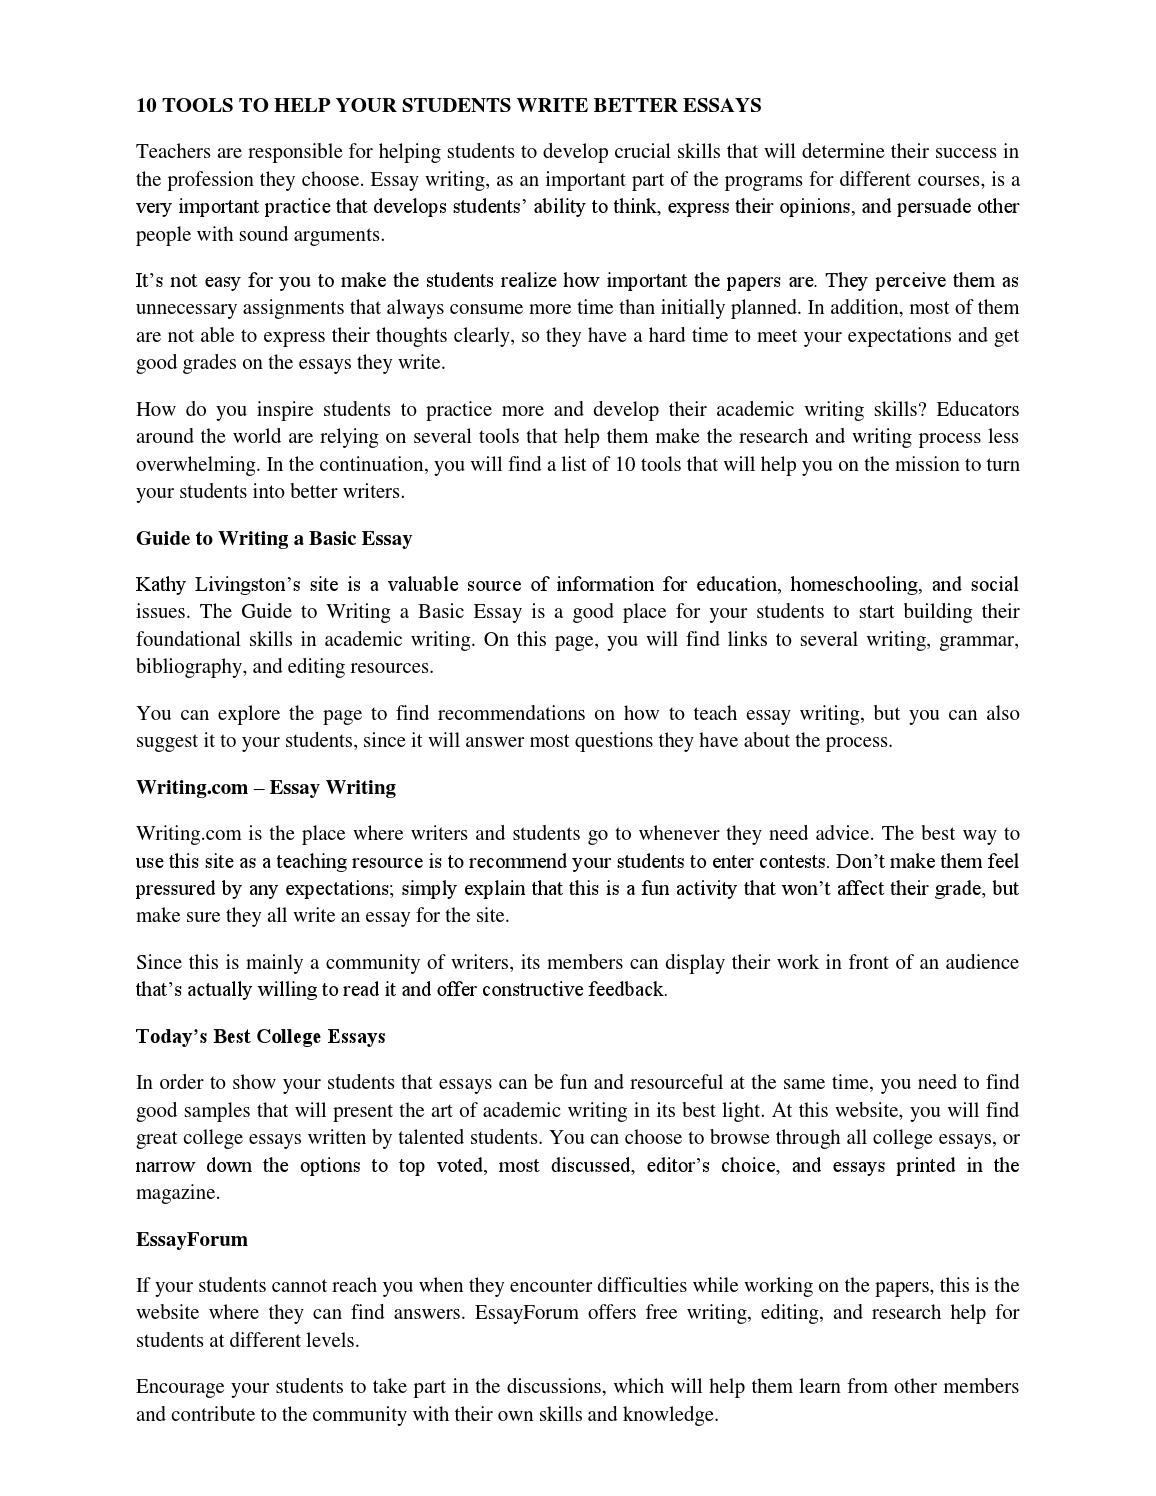 002 Essay Writing Websites Reviews For Students Editing Free Page Research Paper Example That20 Outstanding Best Full